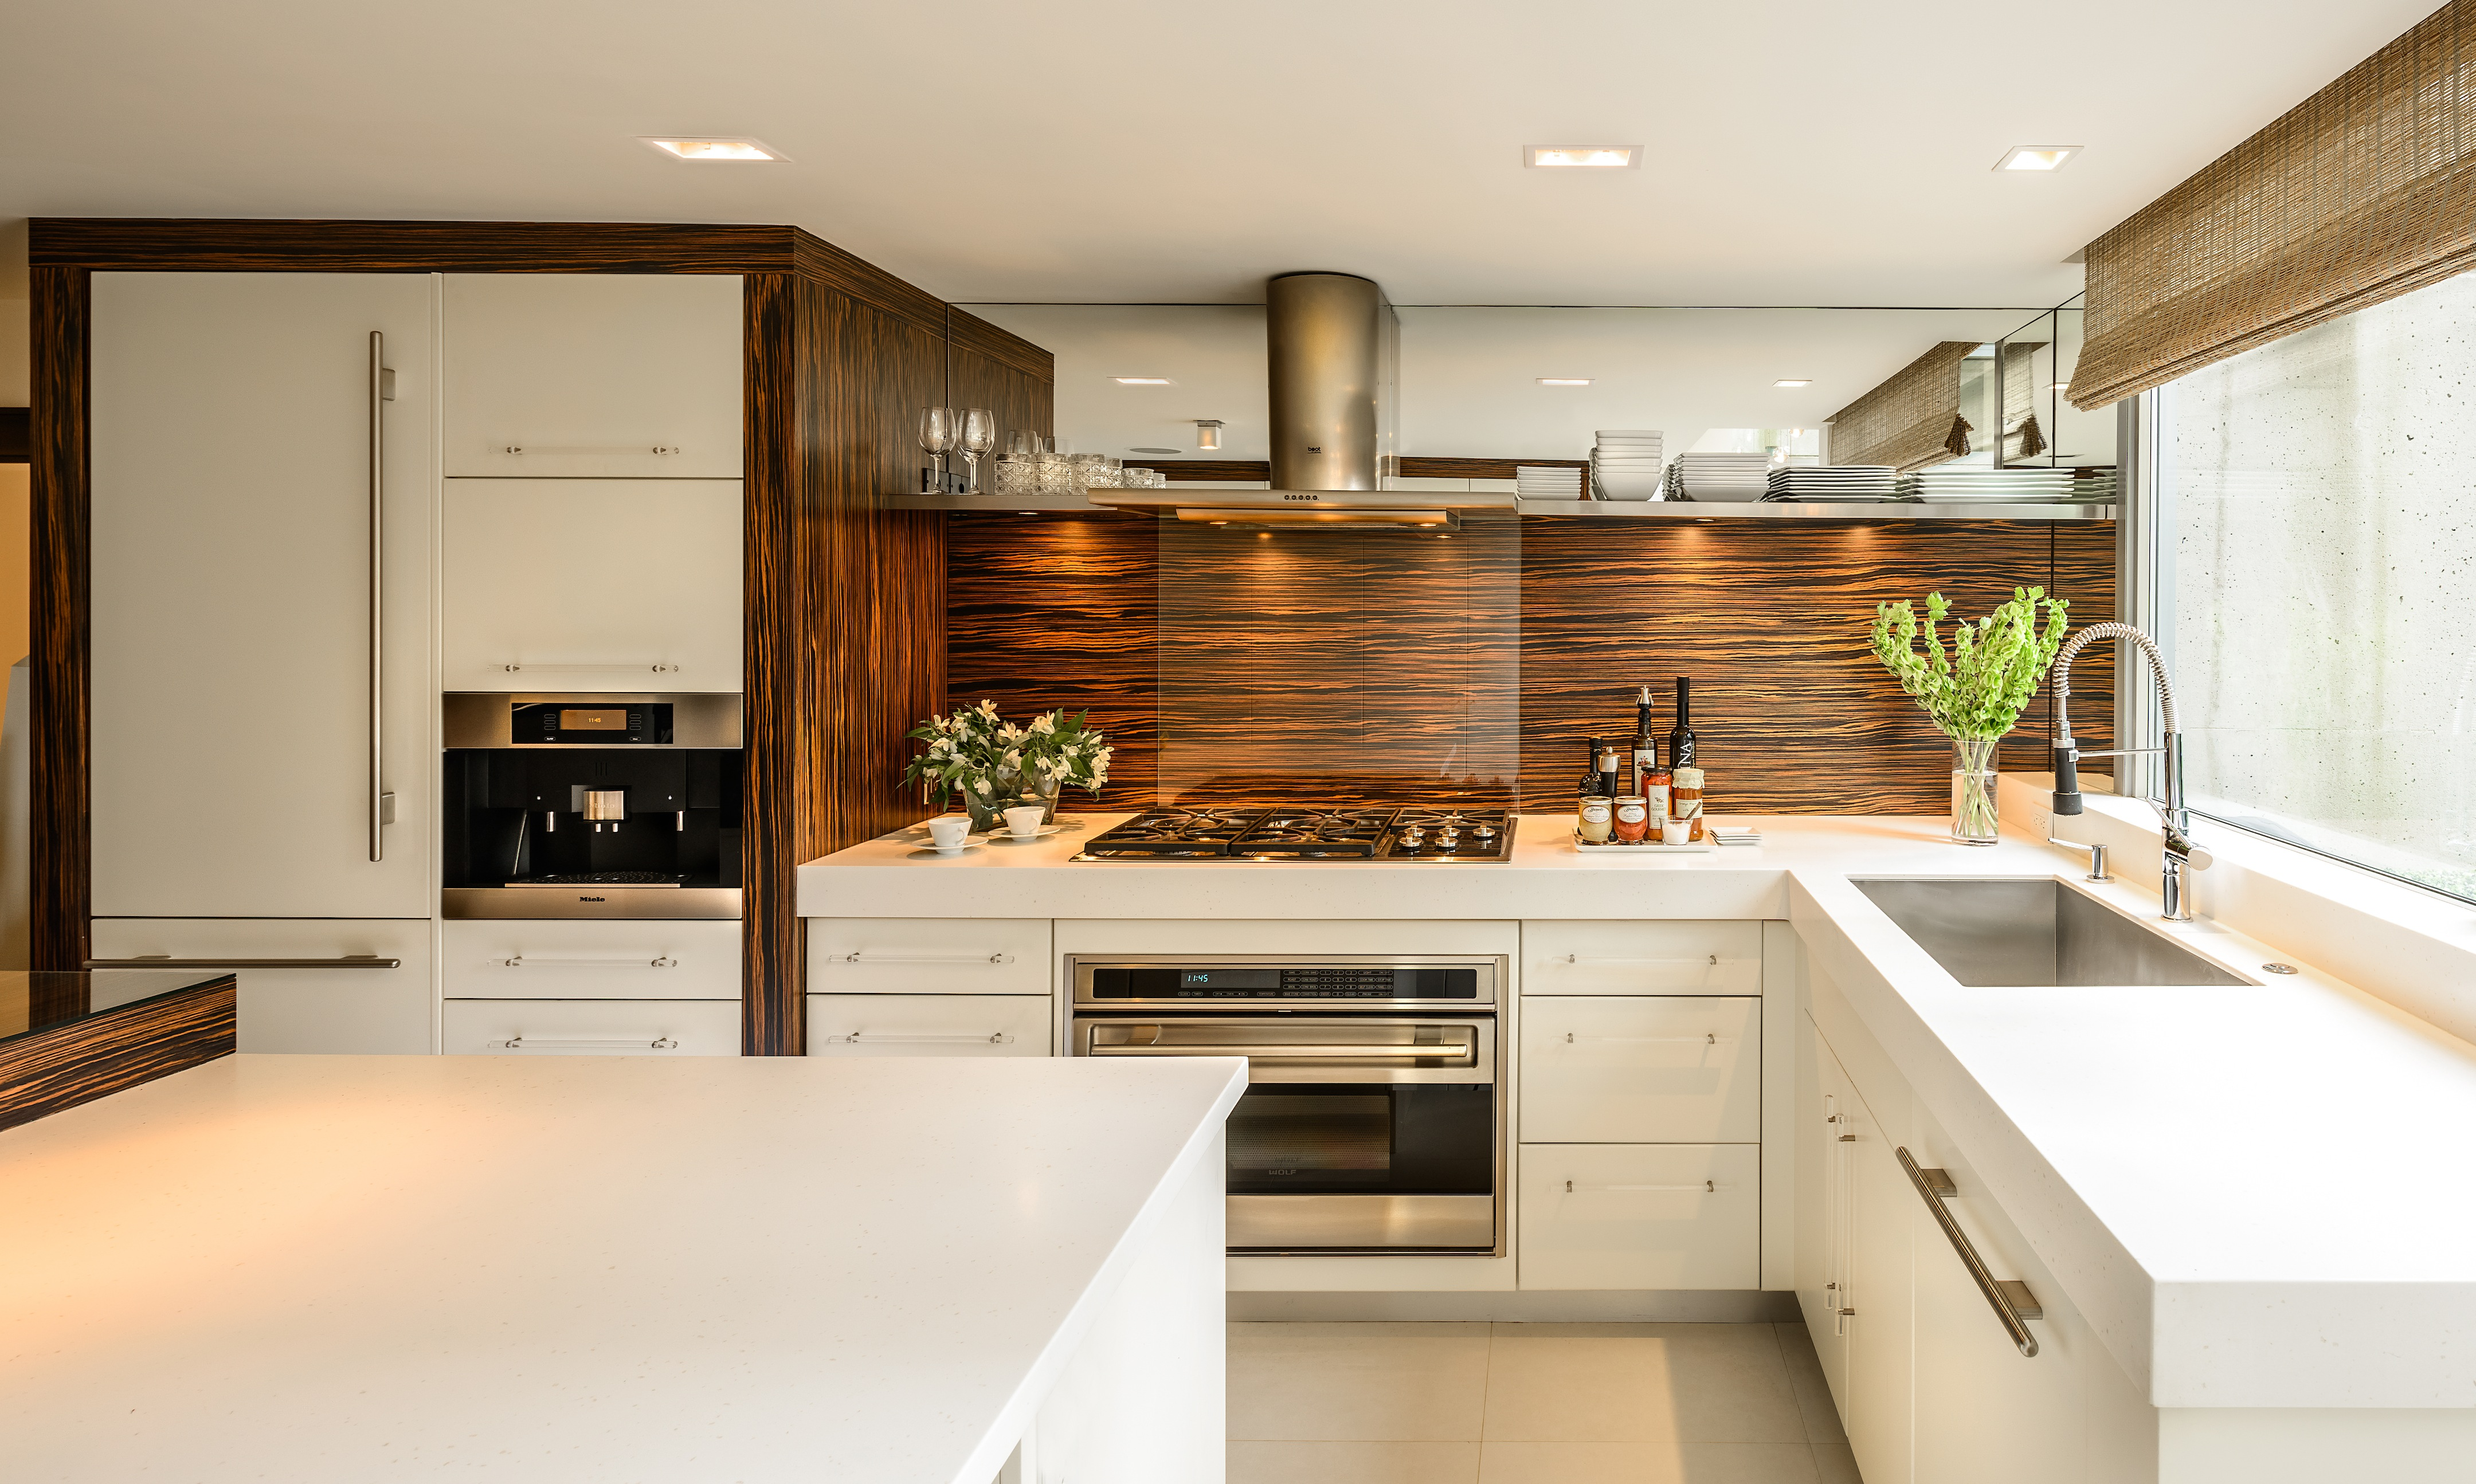 get your dream custom kitchen design in perth - molyneux designs